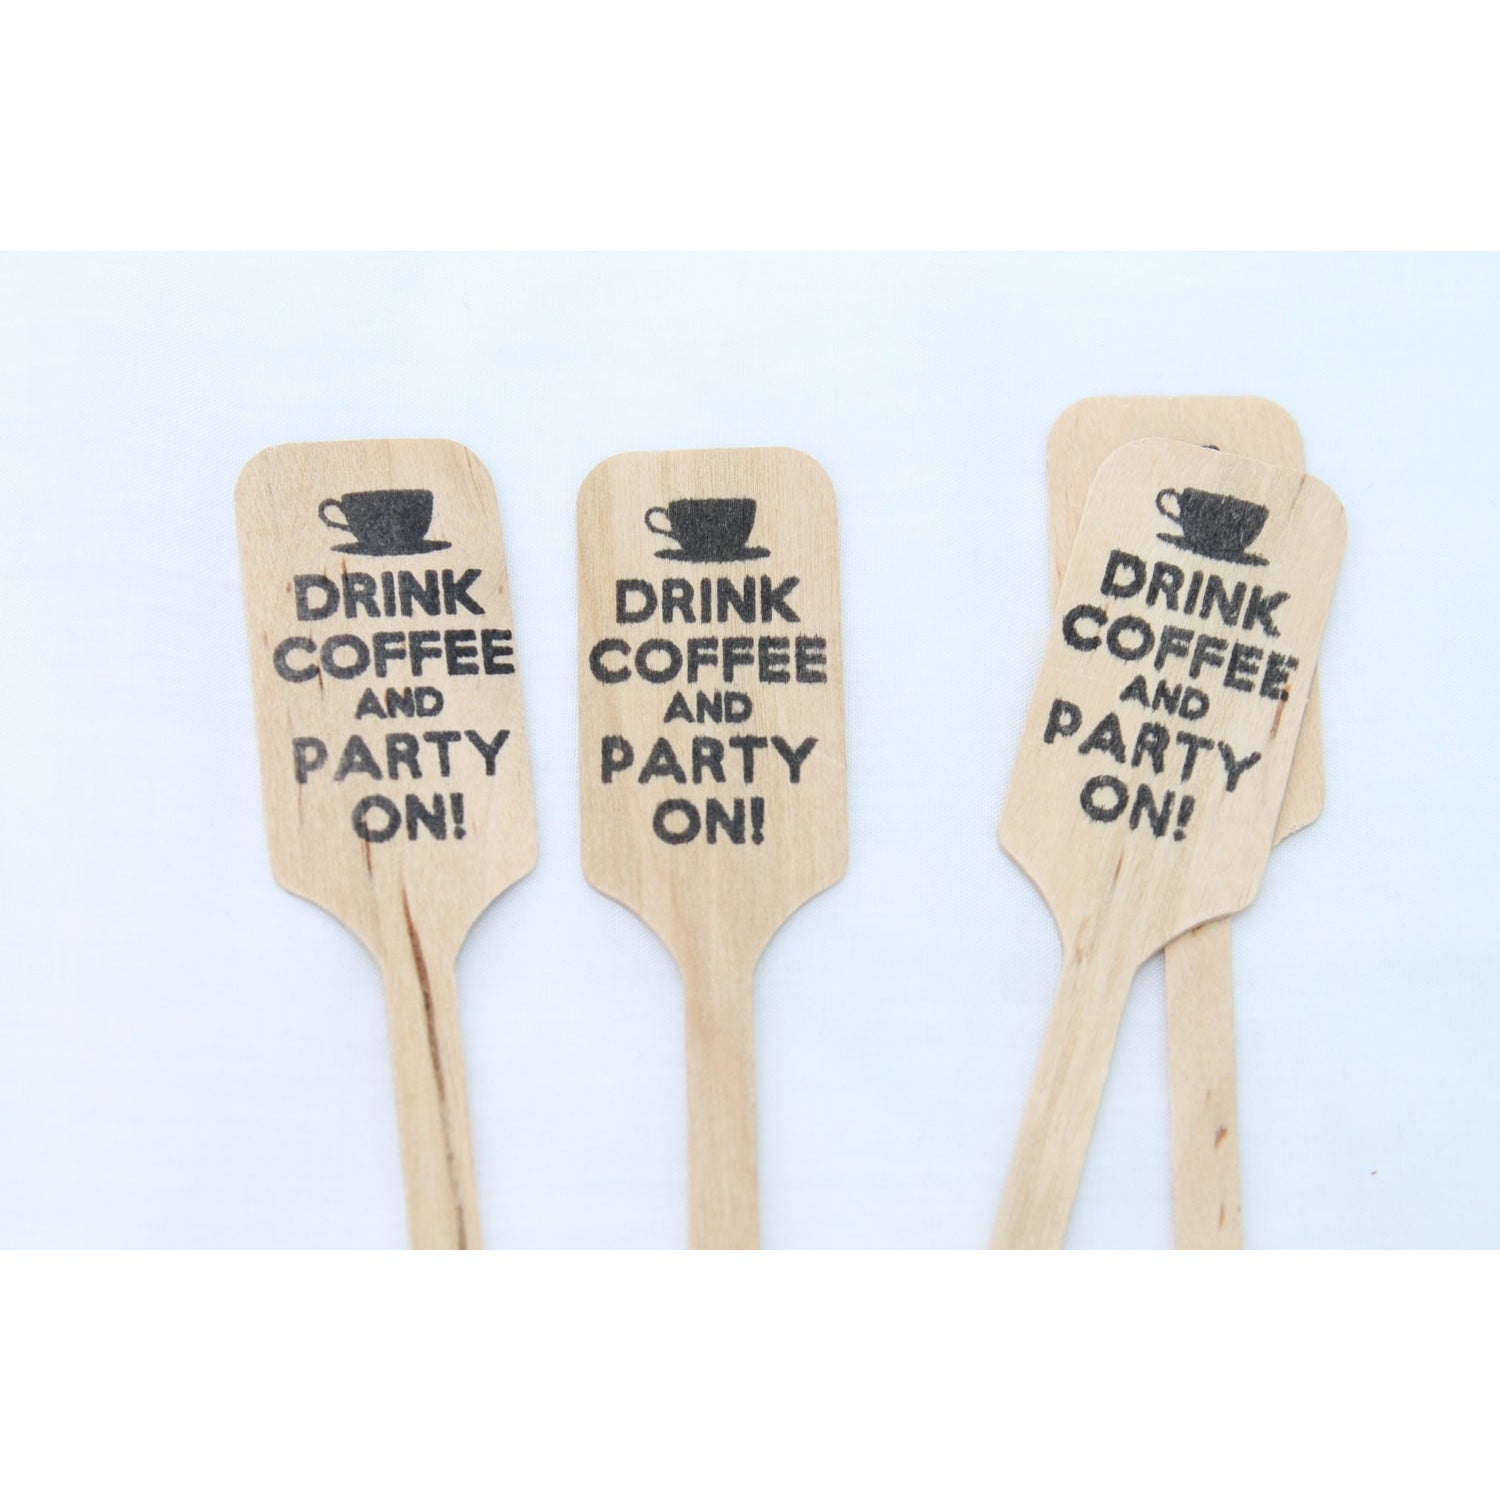 Drink Coffee and Party On  -  Wooden Coffee or Drink Stirrers Great for Weddings - Tulle and Twig